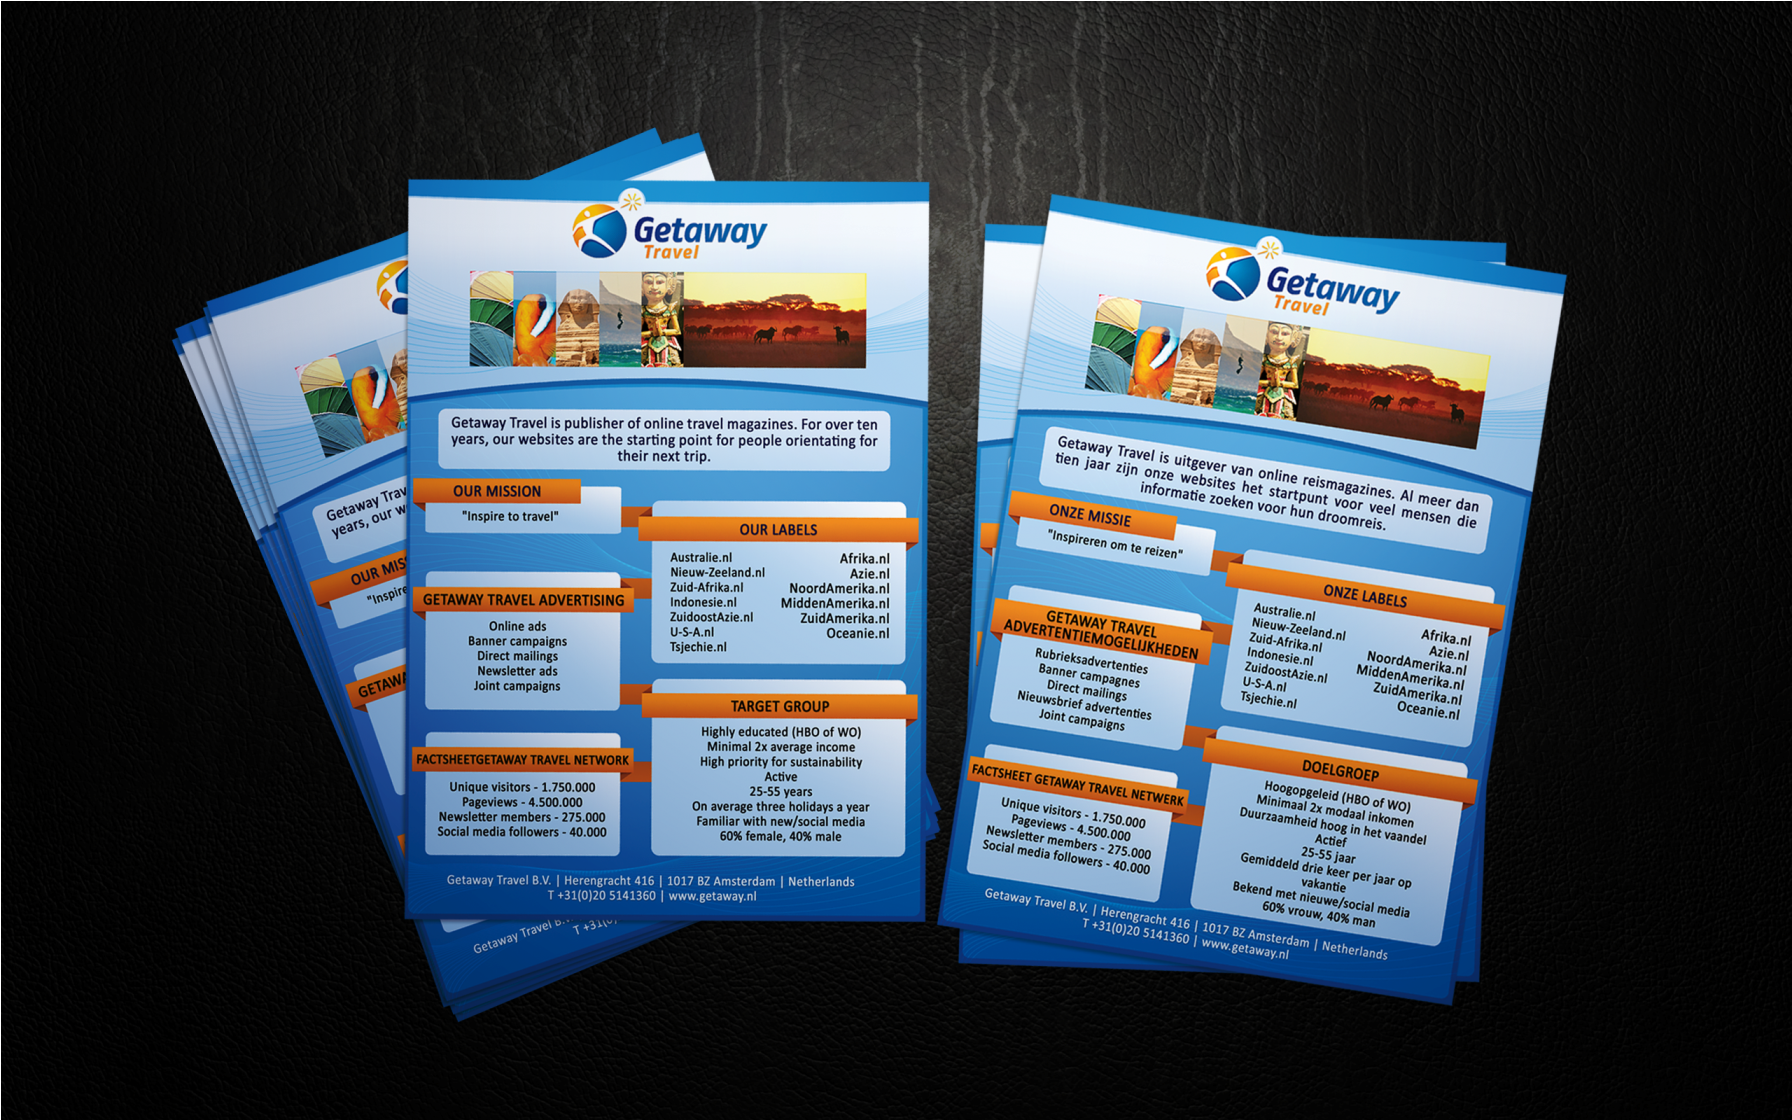 New stationery wanted for Getaway Travel b.v.